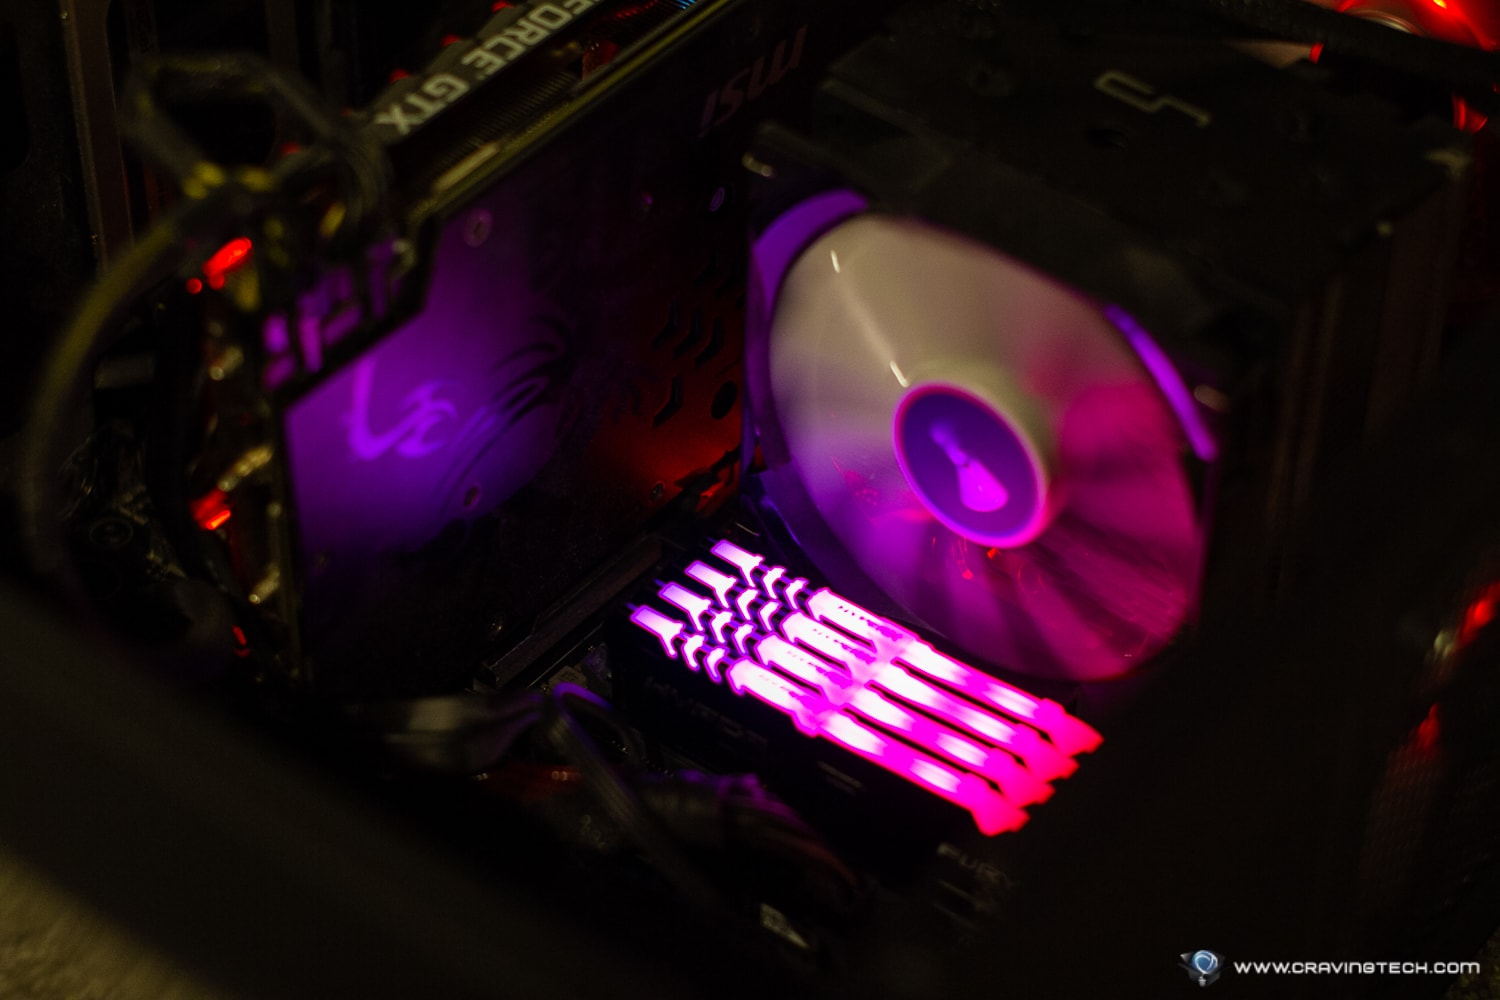 HyperX-Fury-DDR4-RGB-Review